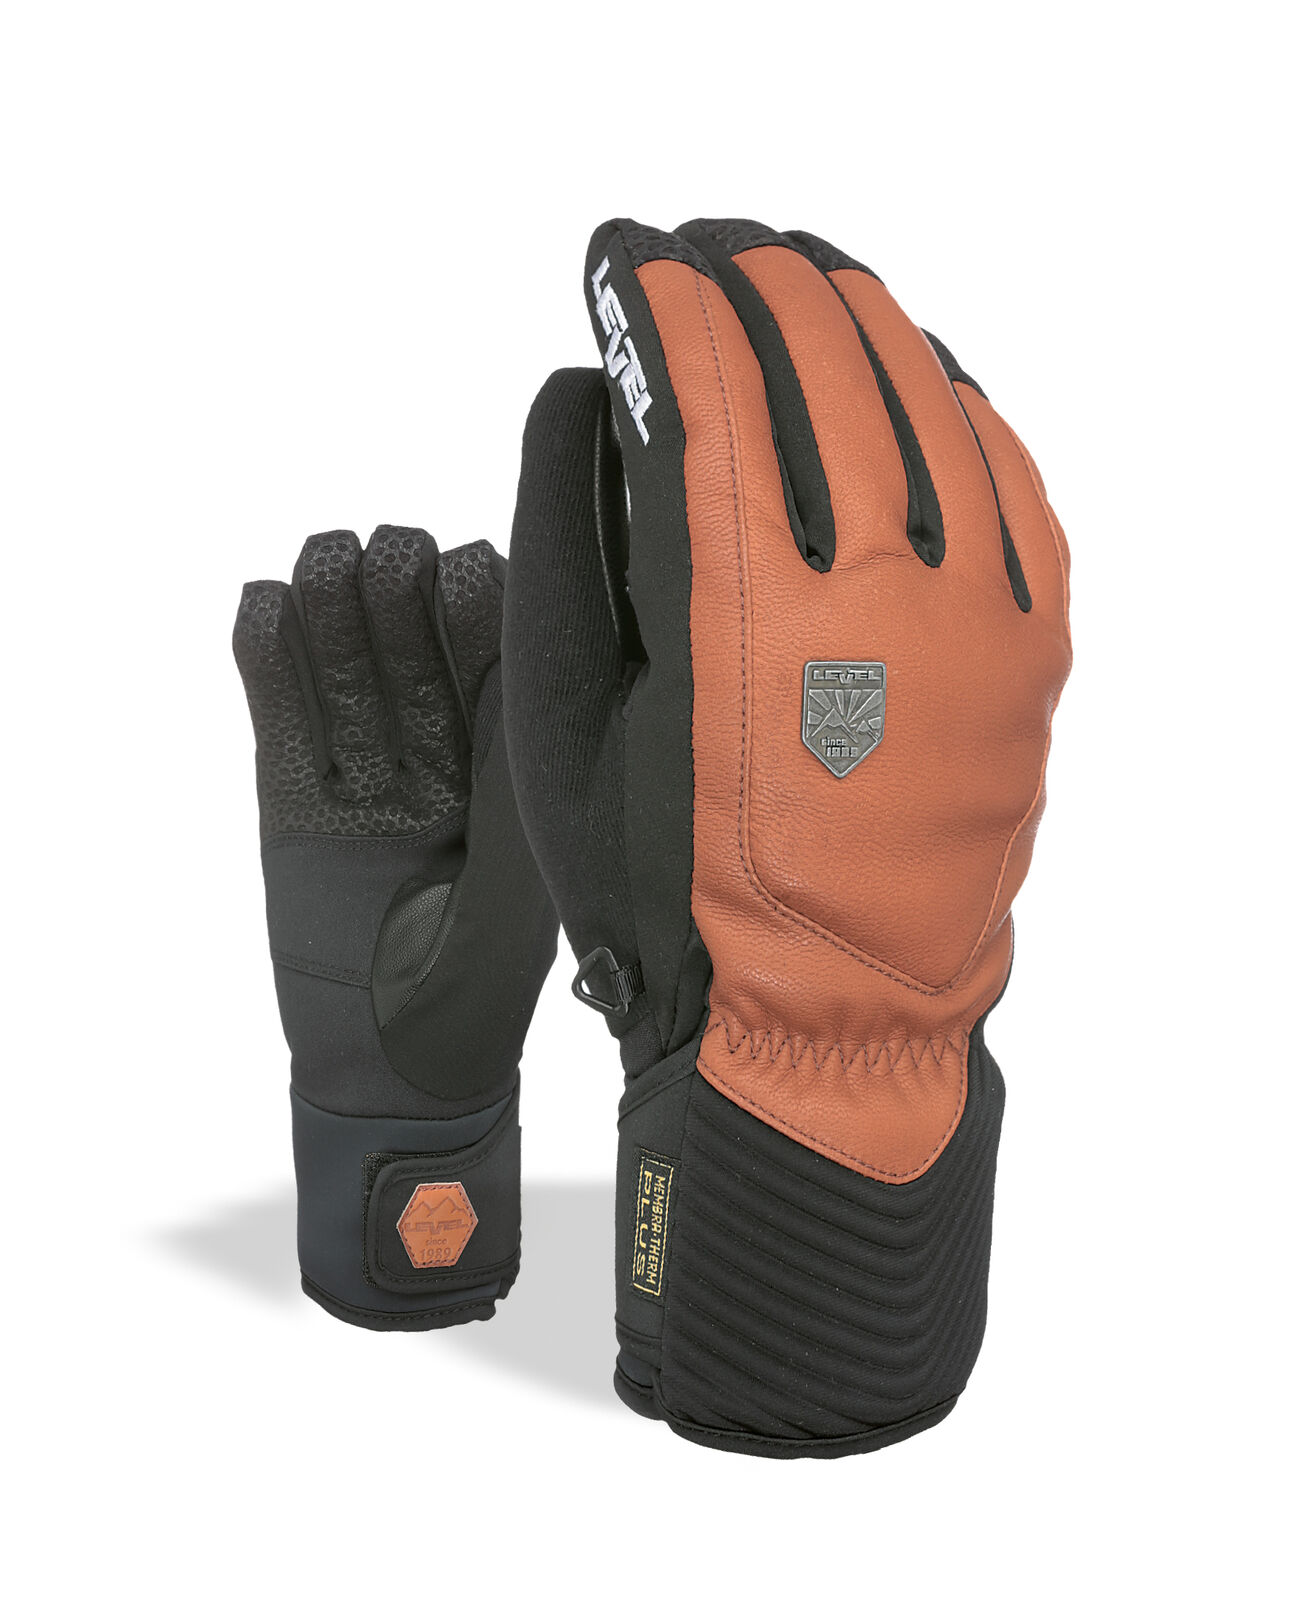 Level Guantes Renegado brown Impermeable Transpirable Cálidos